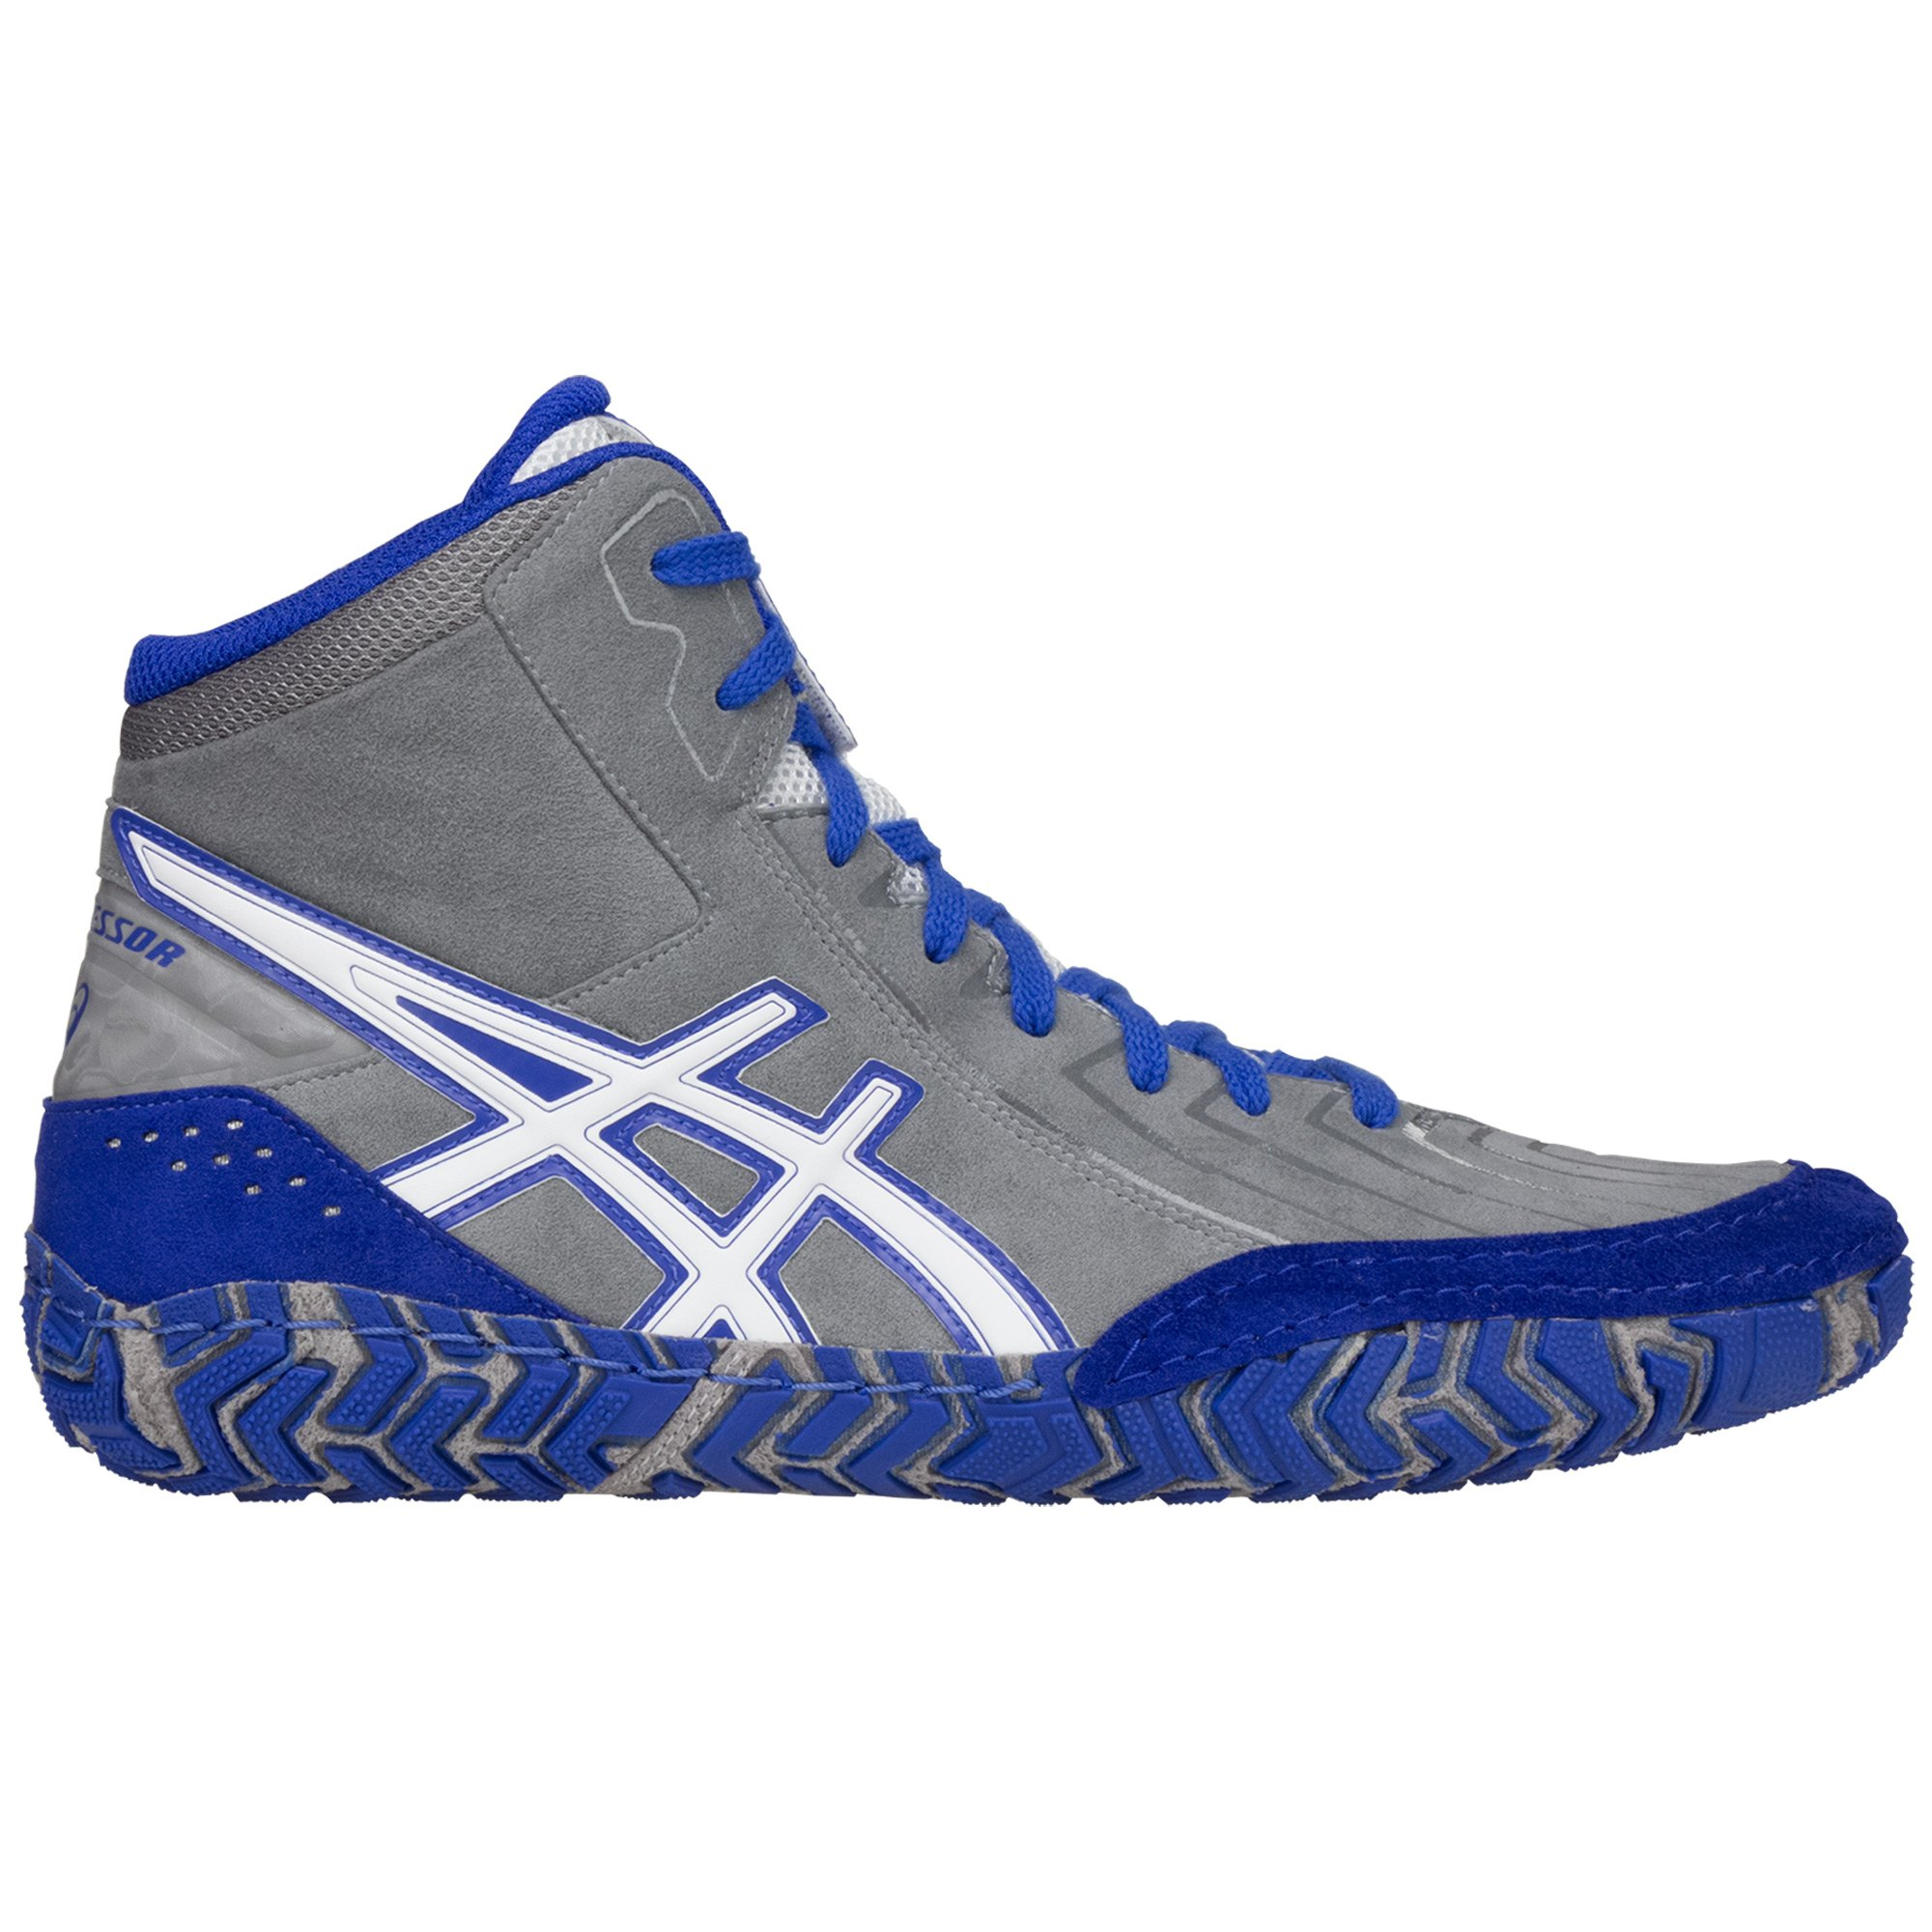 ASICS Aggressor 3 Shoes | WrestlingMart | Free Shipping